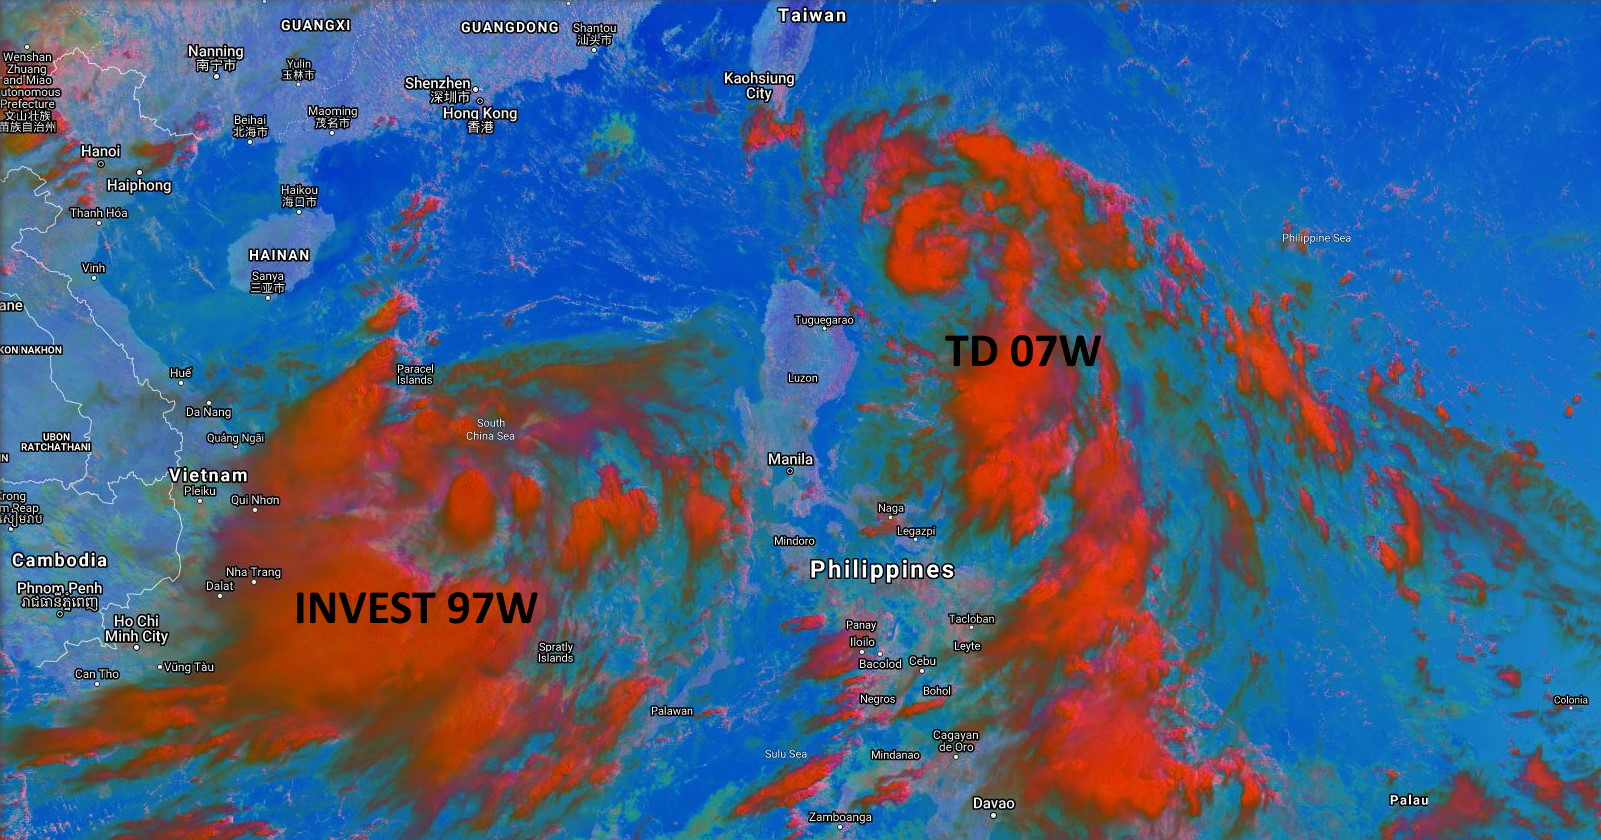 SATELLITE ANALYSIS, INITIAL POSITION AND INTENSITY DISCUSSION: ANIMATED MULTISPECTRAL SATELLITE IMAGERY (MSI) SUGGESTS THAT THE OVERALL CIRCULATION ASSOCIATED WITH TD 07W HAS IMPROVED SLIGHTLY. LOW-LEVEL CURVED BANDS ARE NOW CLEARLY EVIDENT IN THE SOUTHERN SECTOR, WRAPPING INTO A VERY COMPACT LOW LEVEL CIRCULATION CENTER (LLCC), INDICATING THAT A DISTINCT CLOSED LLCC HAS PINCHED OFF FROM THE LARGER TROUGH IN WHICH TD 07W WAS PREVIOUSLY EMBEDDED. FROM A CONVECTIVE STANDPOINT HOWEVER, THE SYSTEM REMAINS DISORGANIZED, WITH CONVECTION FLARING ALONG THE FEEDER BANDS BUT FAILING TO MAINTAIN ITSELF OVER OR NEAR THE CORE. THE SYSTEM HAS SPED UP SIGNIFICANTLY OVER THE PAST FEW HOURS, NOW MOVING AT LEAST 41 KM/H TOWARDS THE NORTHWEST, ALONG A TIGHTENED GRADIENT ON THE SOUTHWESTERN PERIPHERY OF A DEEP SUBTROPICAL RIDGE TO THE NORTHEAST. THE INITIAL POSITION WAS PLACED WITH MODERATE CONFIDENCE INITIALLY BUT LATE RECEIPT OF A 050023Z ASCAT-A PASS PROVIDES HIGH CONFIDENCE TO THE POSITION. THE INITIAL INTENSITY IS ASSESSED WITH MODERATE CONFIDENCE BASED ON A T2.0 (30 KTS) DVORAK INTENSITY ESTIMATE FROM KNES AND THE PREVIOUSLY MENTIONED ASCAT-A PASS, WHICH DOES SHOW A SLIGHT FURTHERANCE OF THE WRAP IN THE WIND FIELD IN THE NORTHERN QUADRANT, AND A PATCH OF 30 KNOT WINDS IN THE NORTHEAST THROUGH SOUTHEAST QUADRANTS.